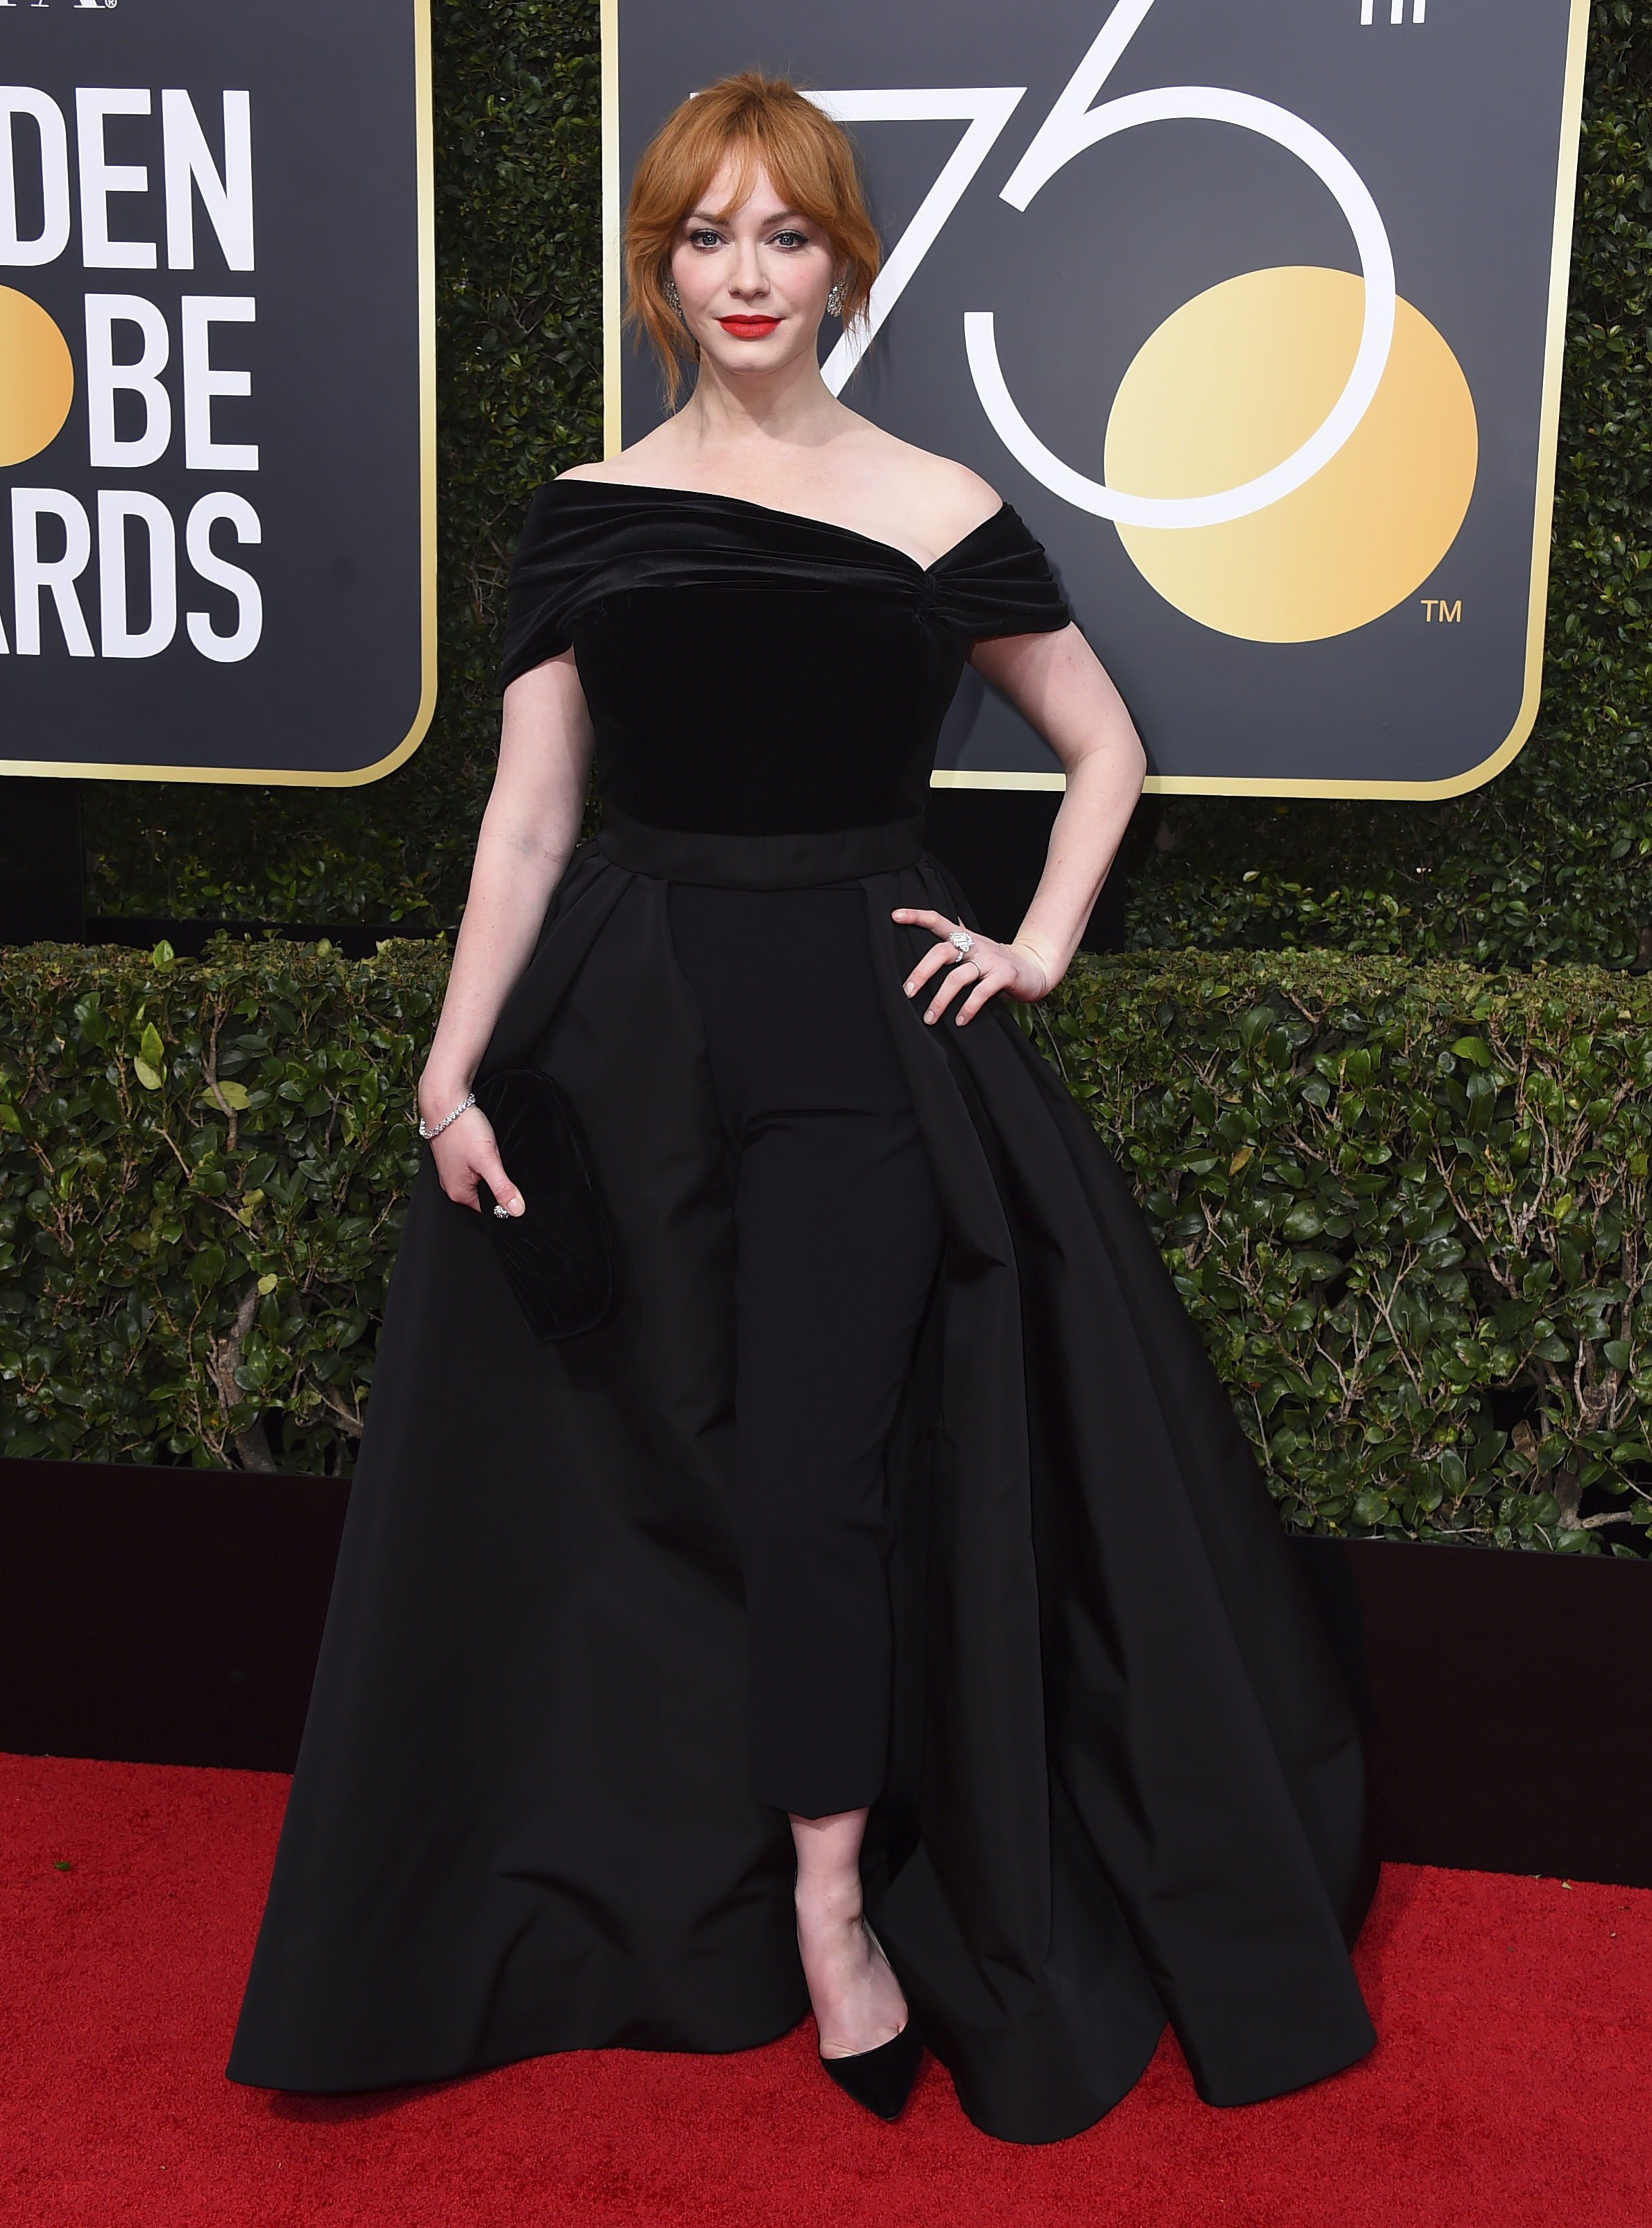 <div class='meta'><div class='origin-logo' data-origin='AP'></div><span class='caption-text' data-credit='Jordan Strauss/Invision/AP'>Christina Hendricks arrives at the 75th annual Golden Globe Awards at the Beverly Hilton Hotel on Sunday, Jan. 7, 2018, in Beverly Hills, Calif.</span></div>